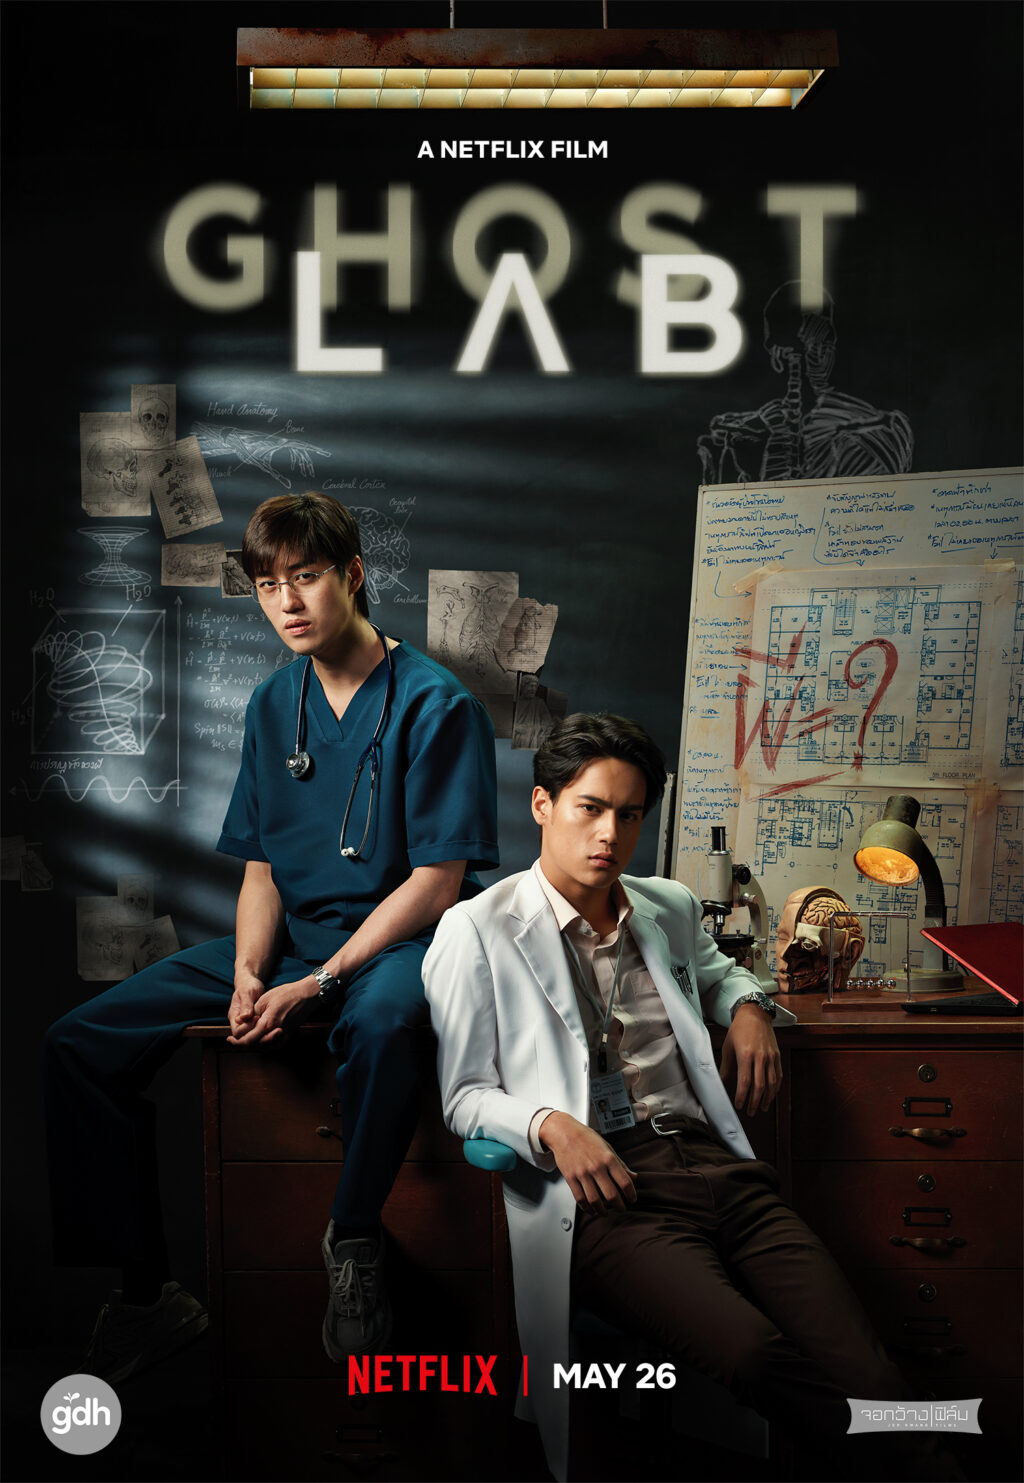 Ghost Lab Poster 1024x1483 - Ghost Lab Review--Netflix's Silly Experiment in Conjuring the Dead